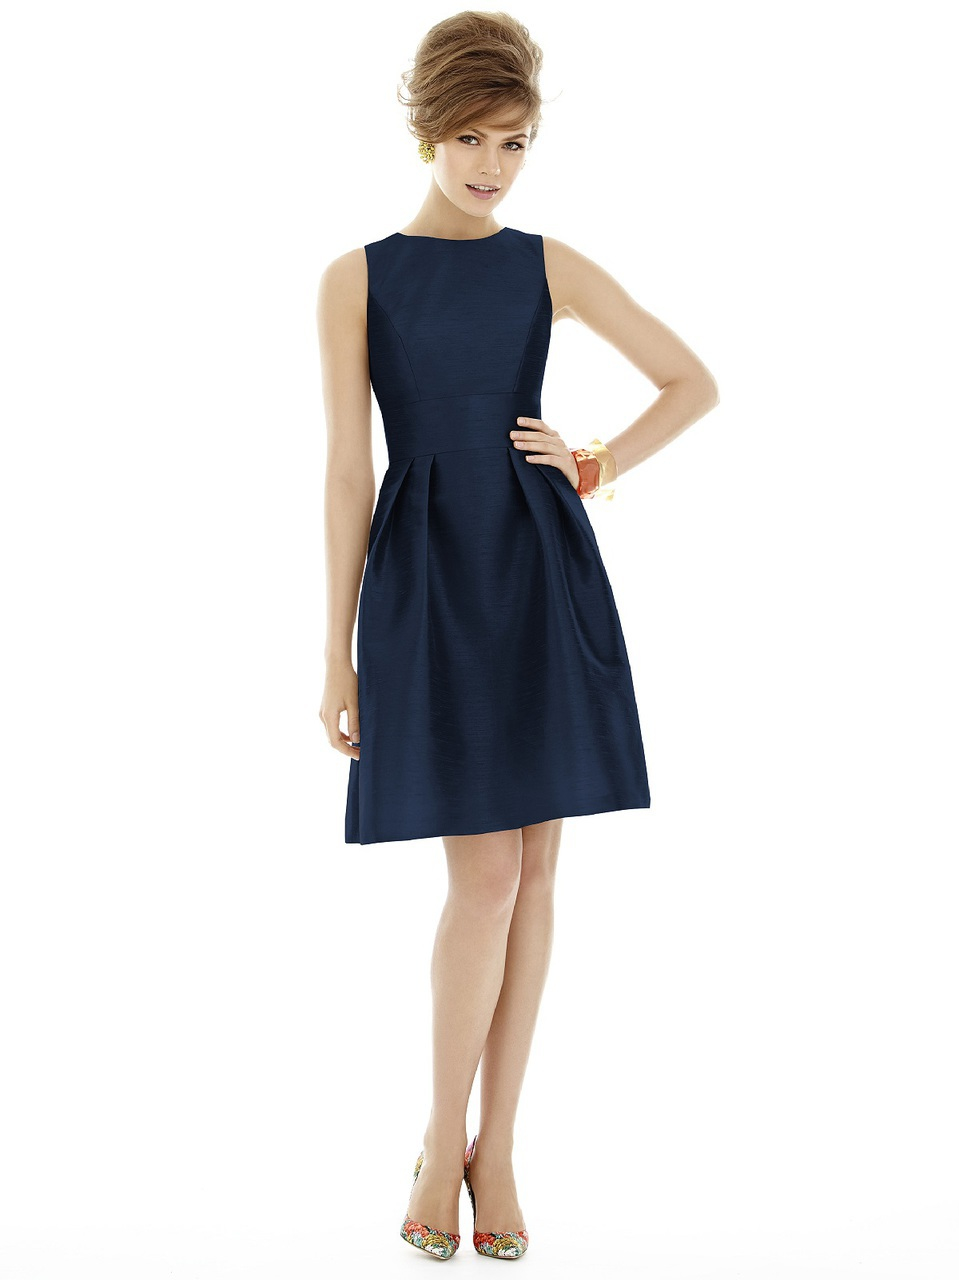 Alfred sung d bridesmaid dress in midnight in blue save 13 lyst alfred sung womens blue d bridesmaid dress in midnight ombrellifo Gallery